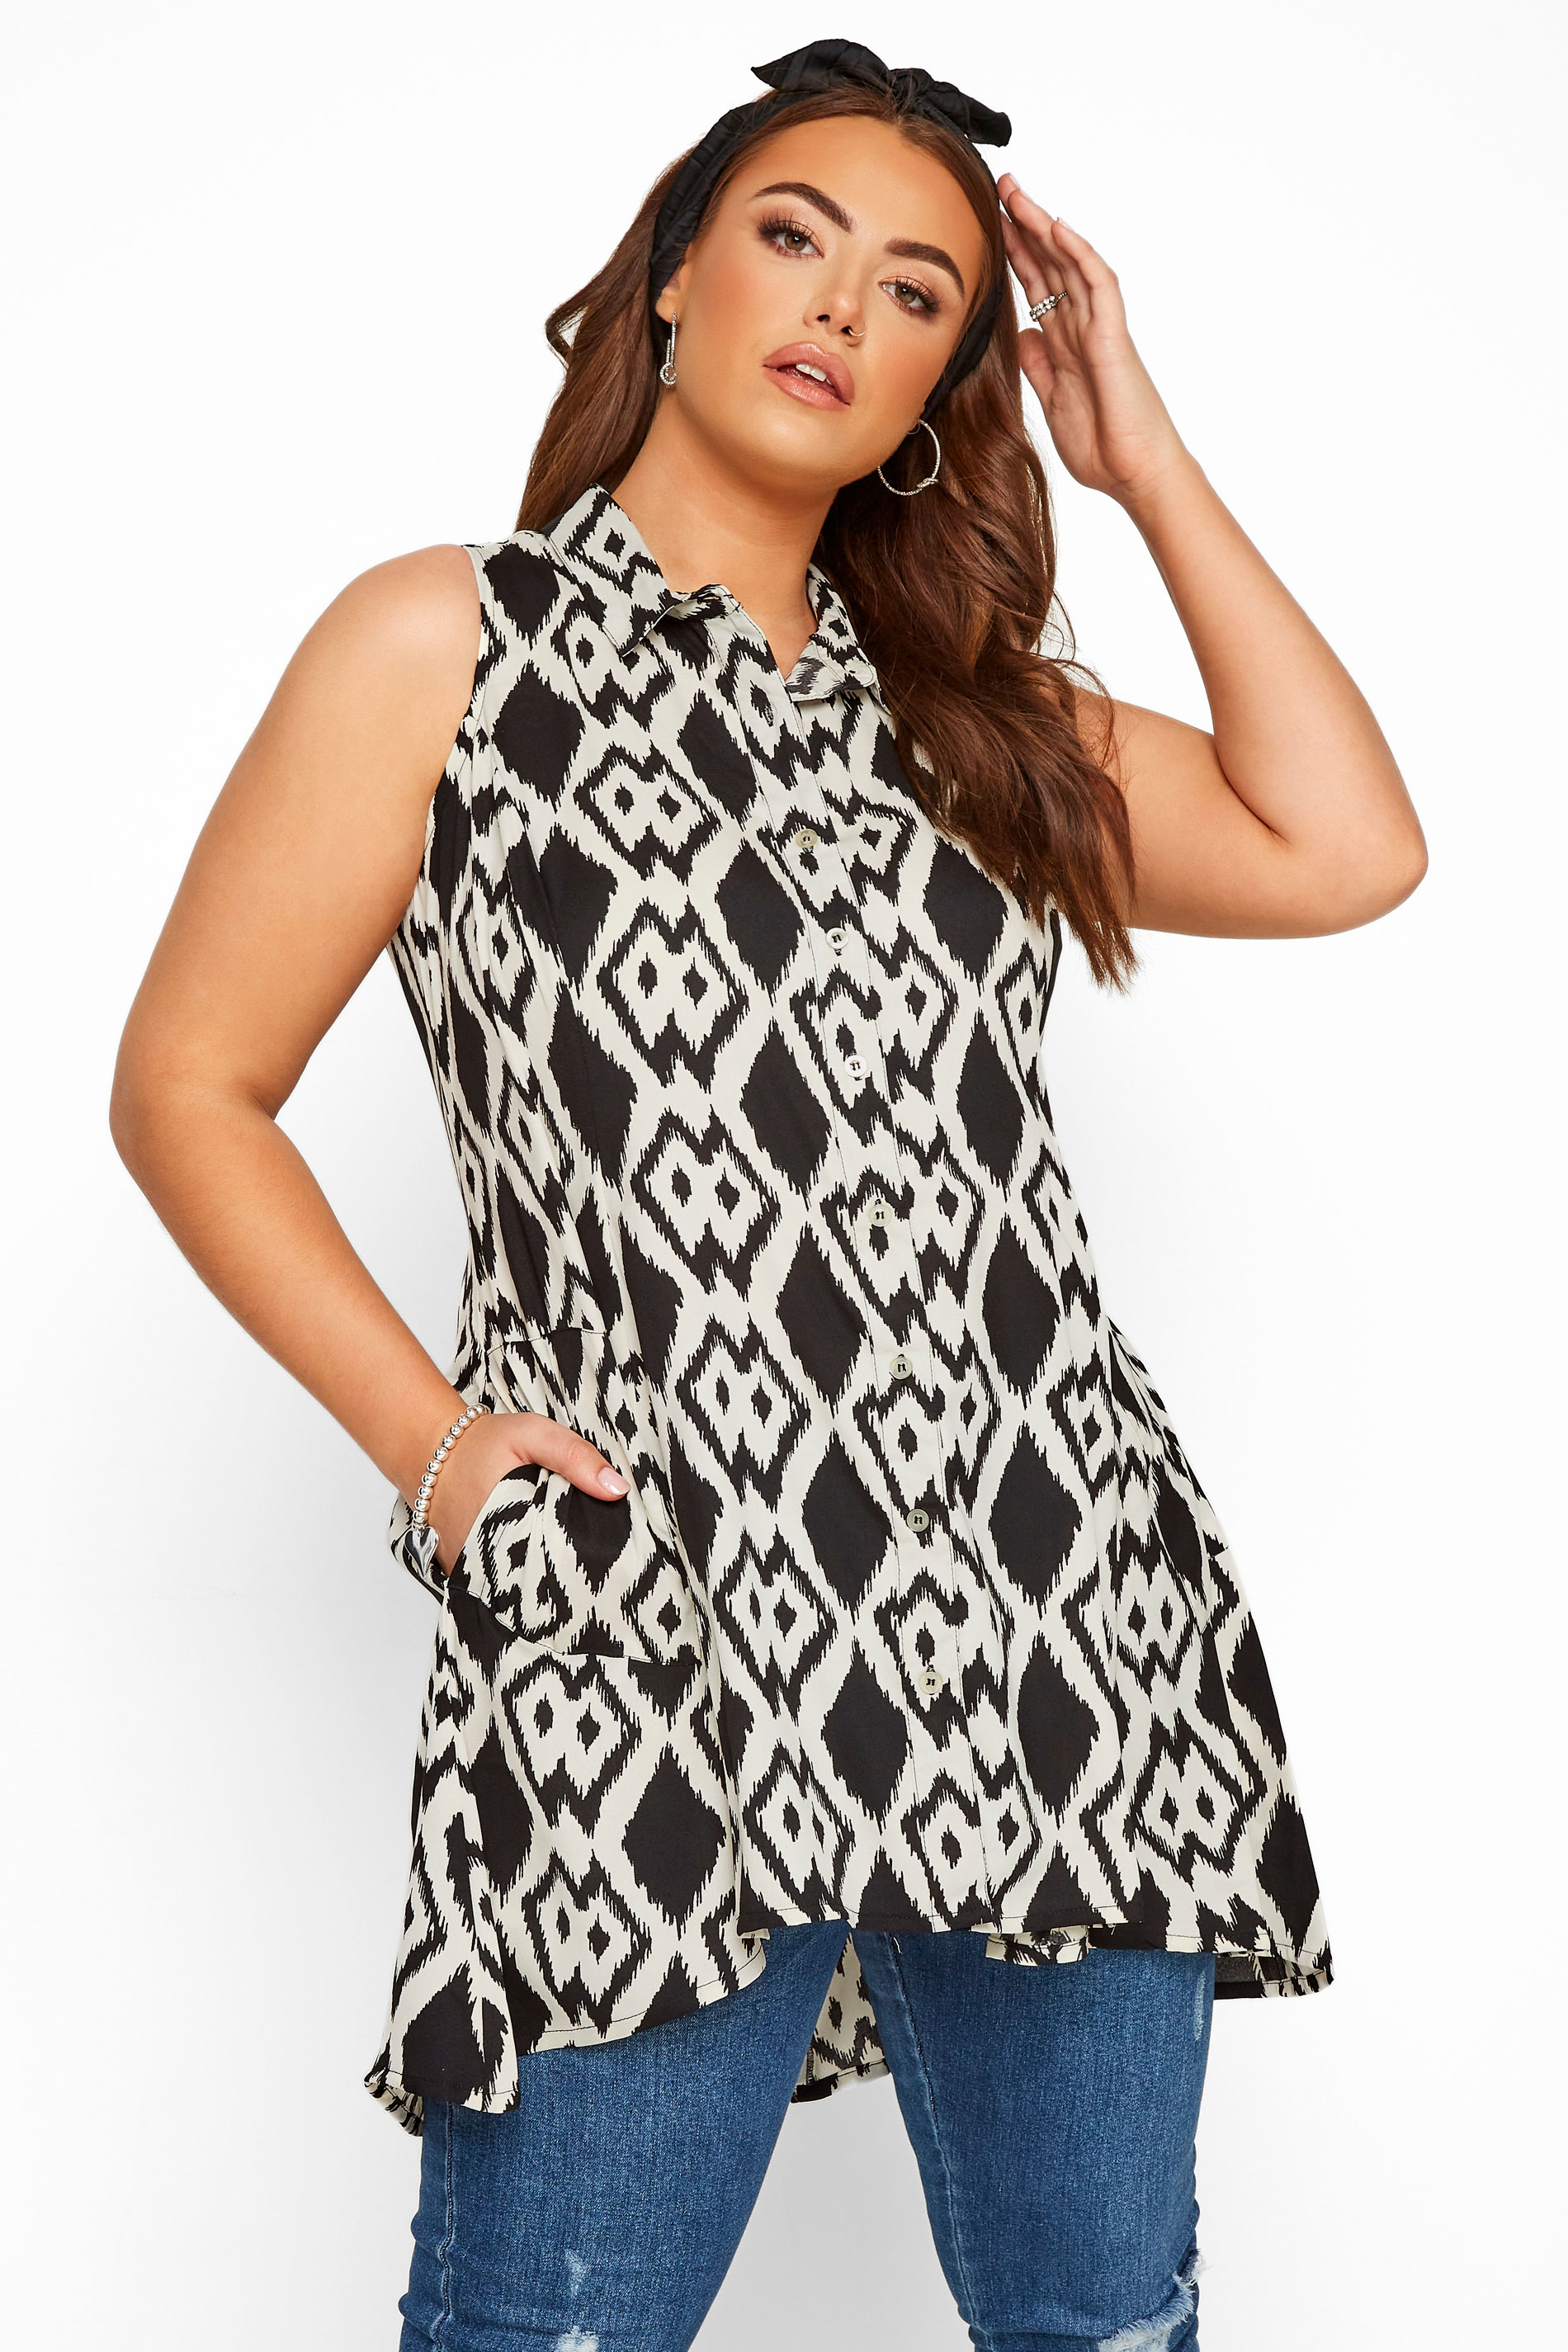 Black & White Ikat Print Sleeveless Chiffon Shirt